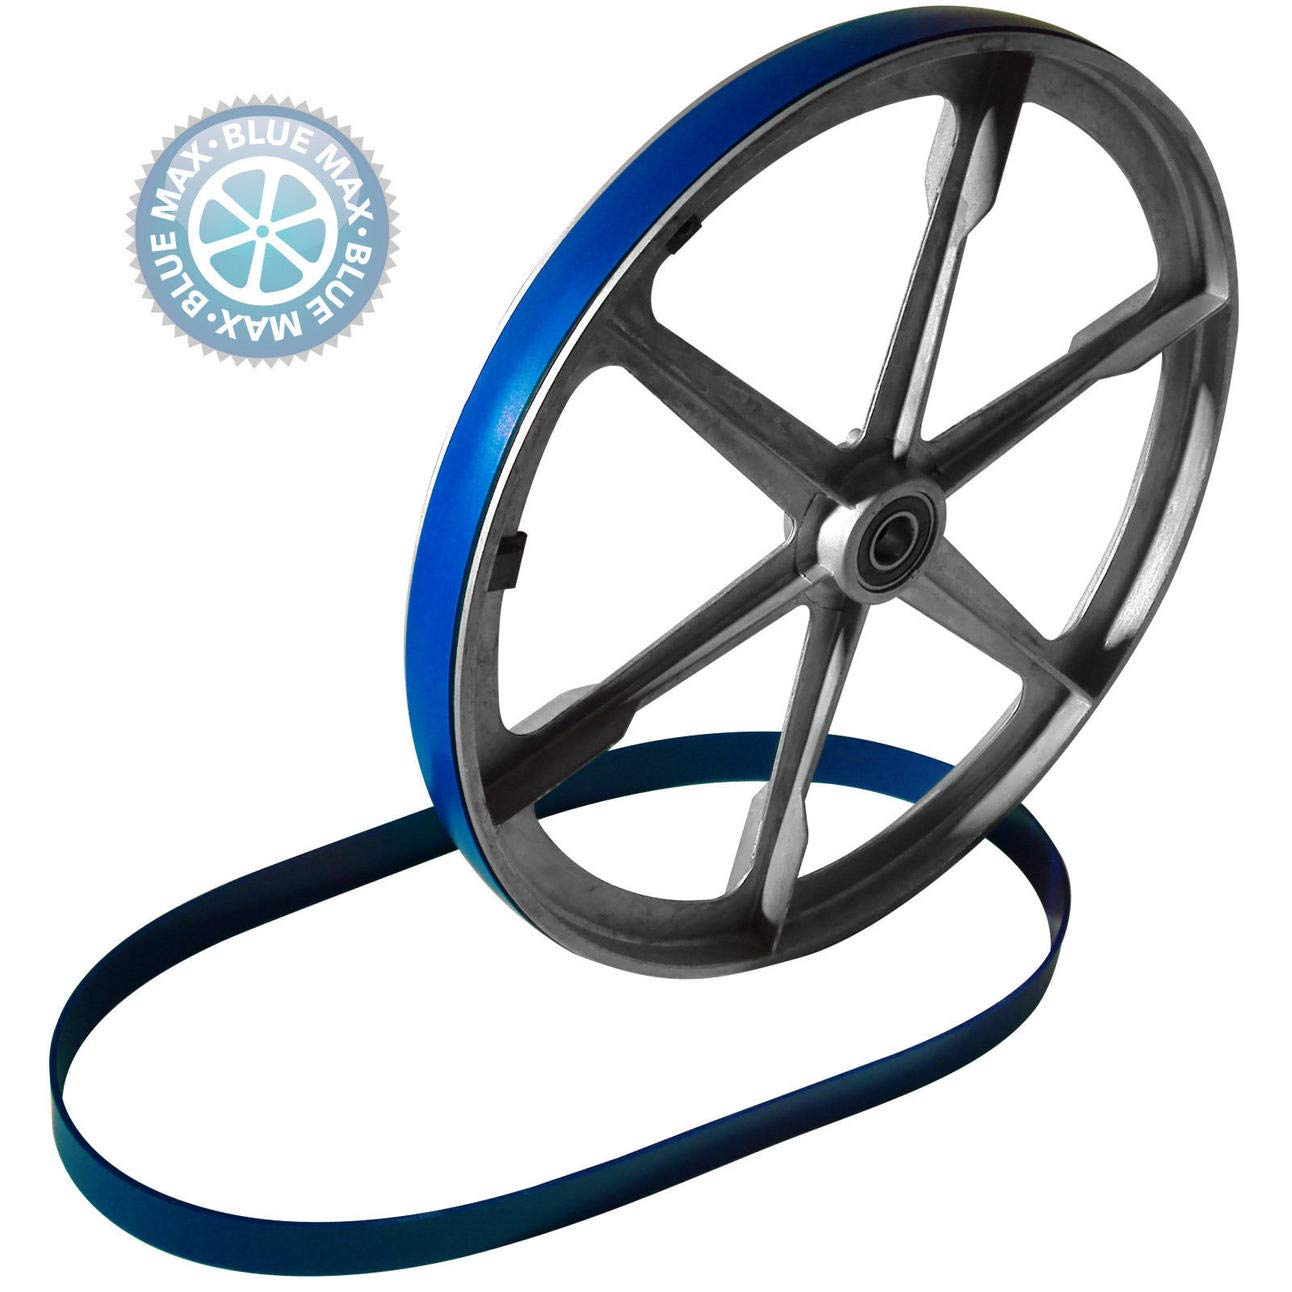 113.243311 BLUE MAX BAND SAW TIRES FOR SEARS CRAFTSMAN 12'' BAND SAW 113.243311